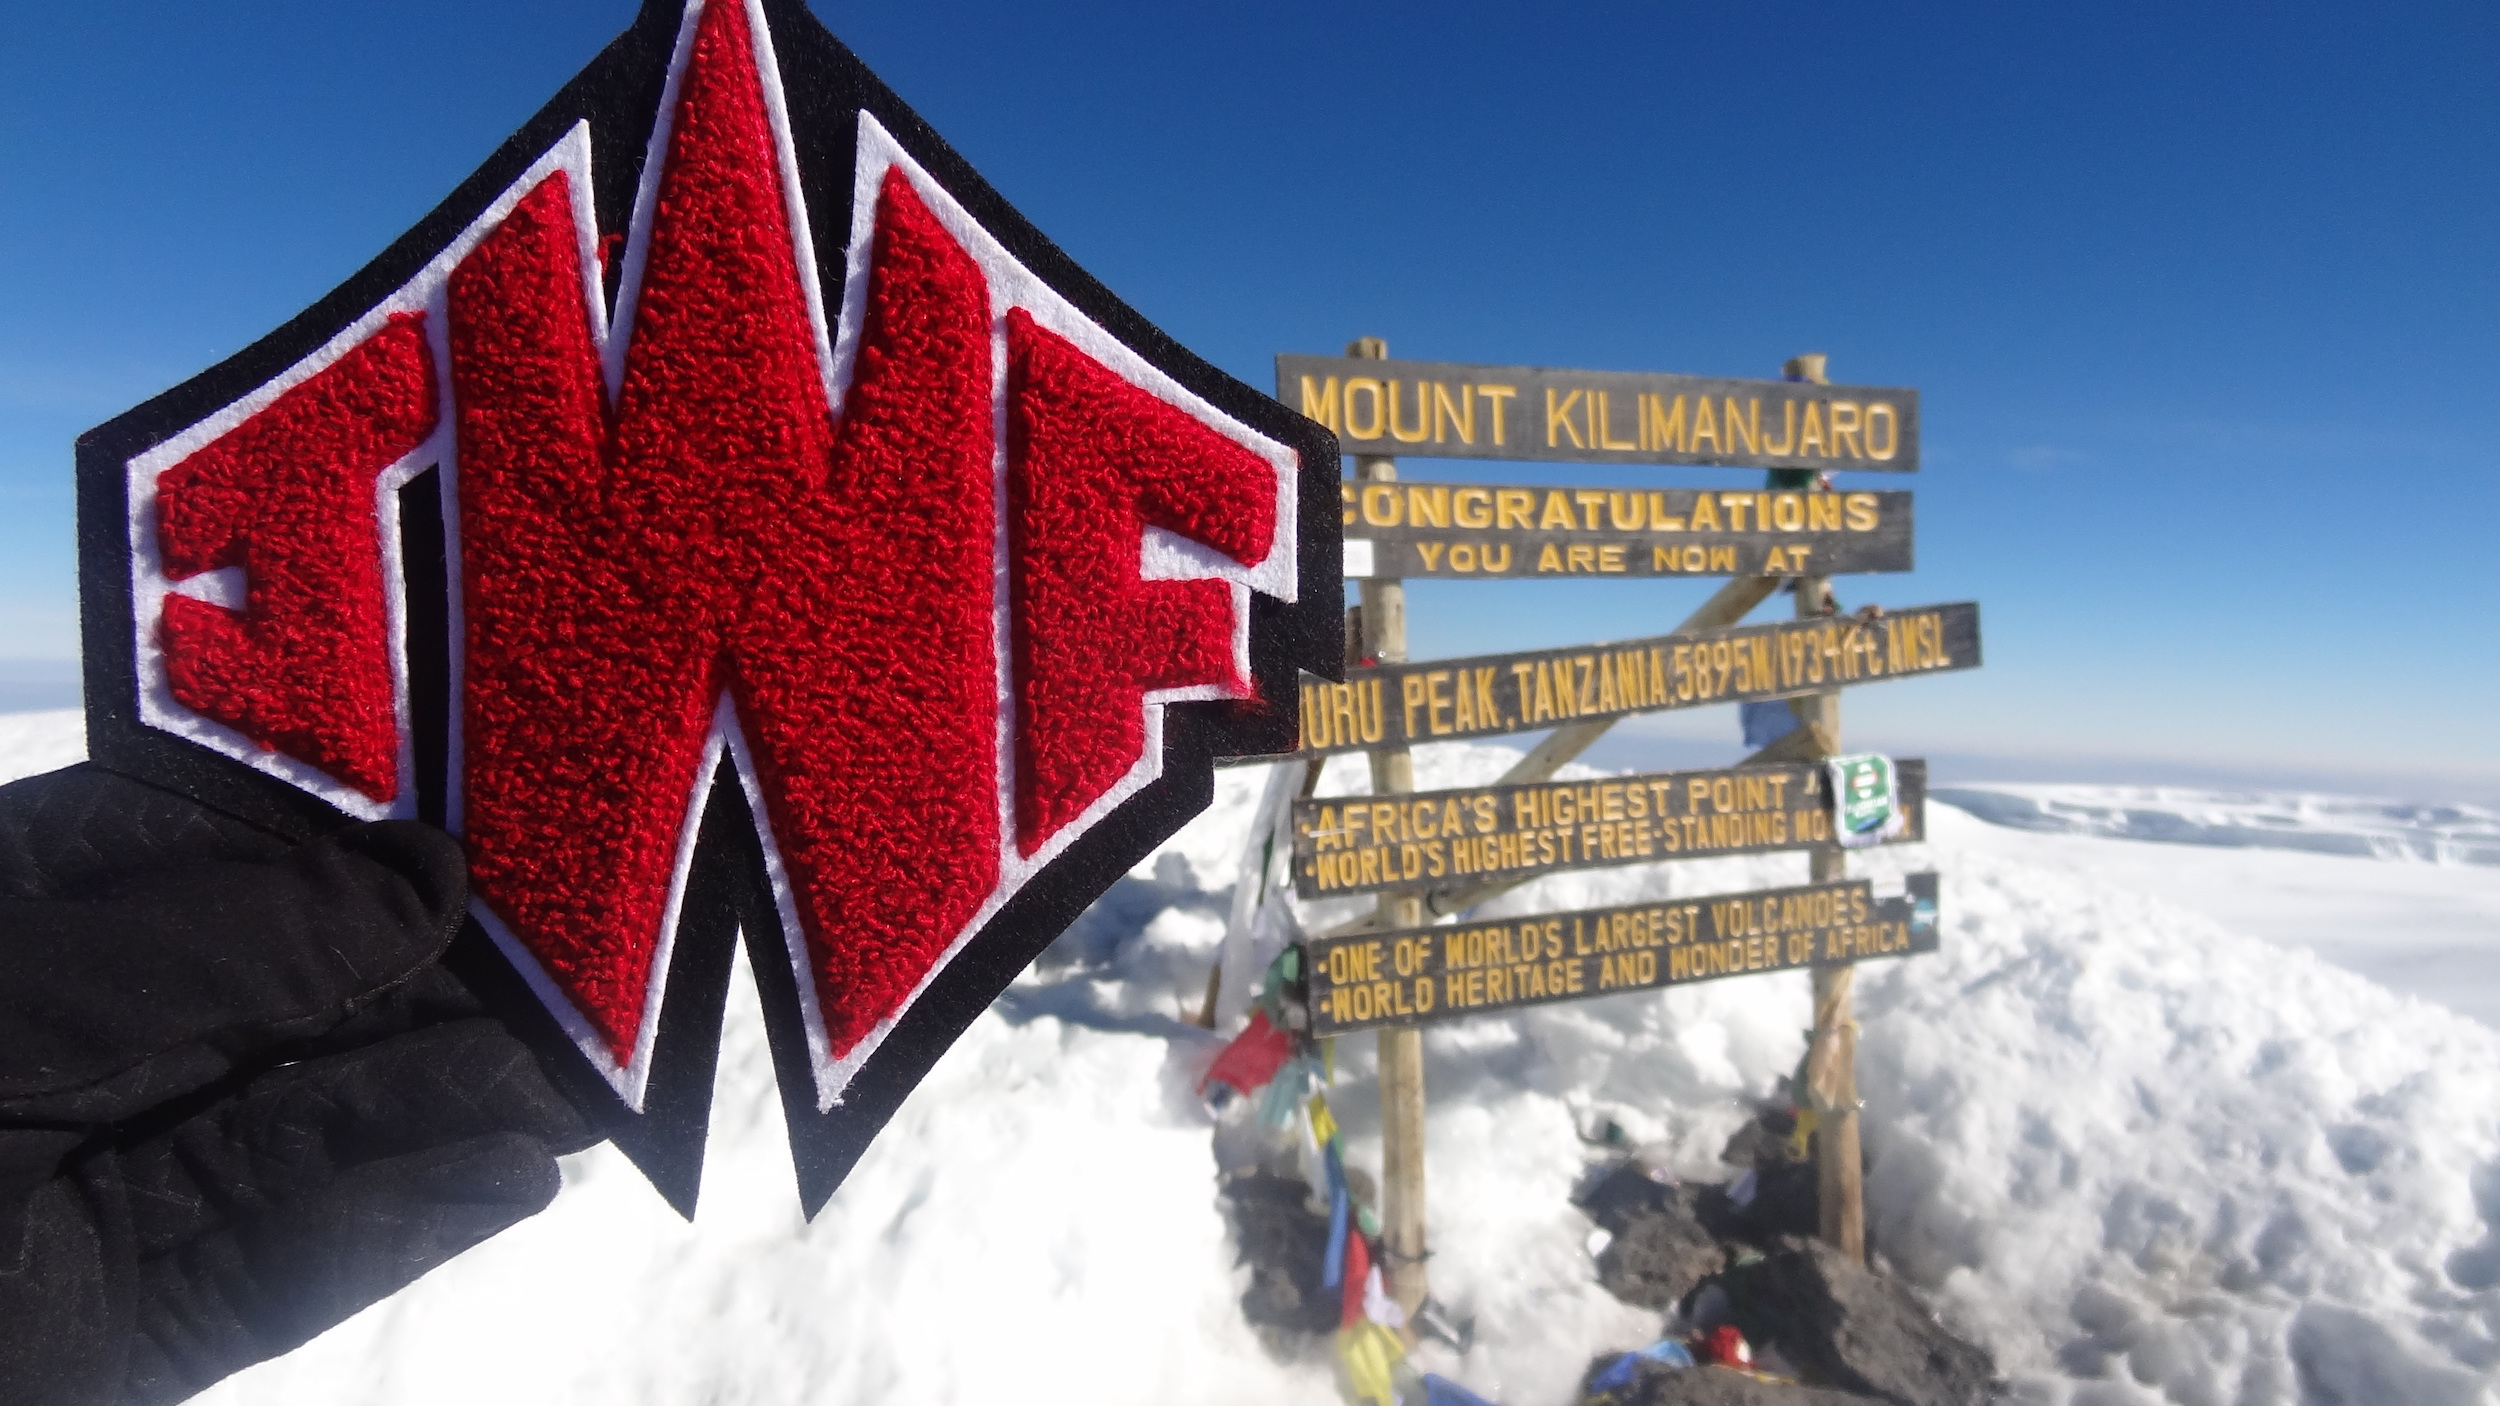 Brian Holtshouser & JFW HS Band: Climbed Mt. Kilimanjaro!